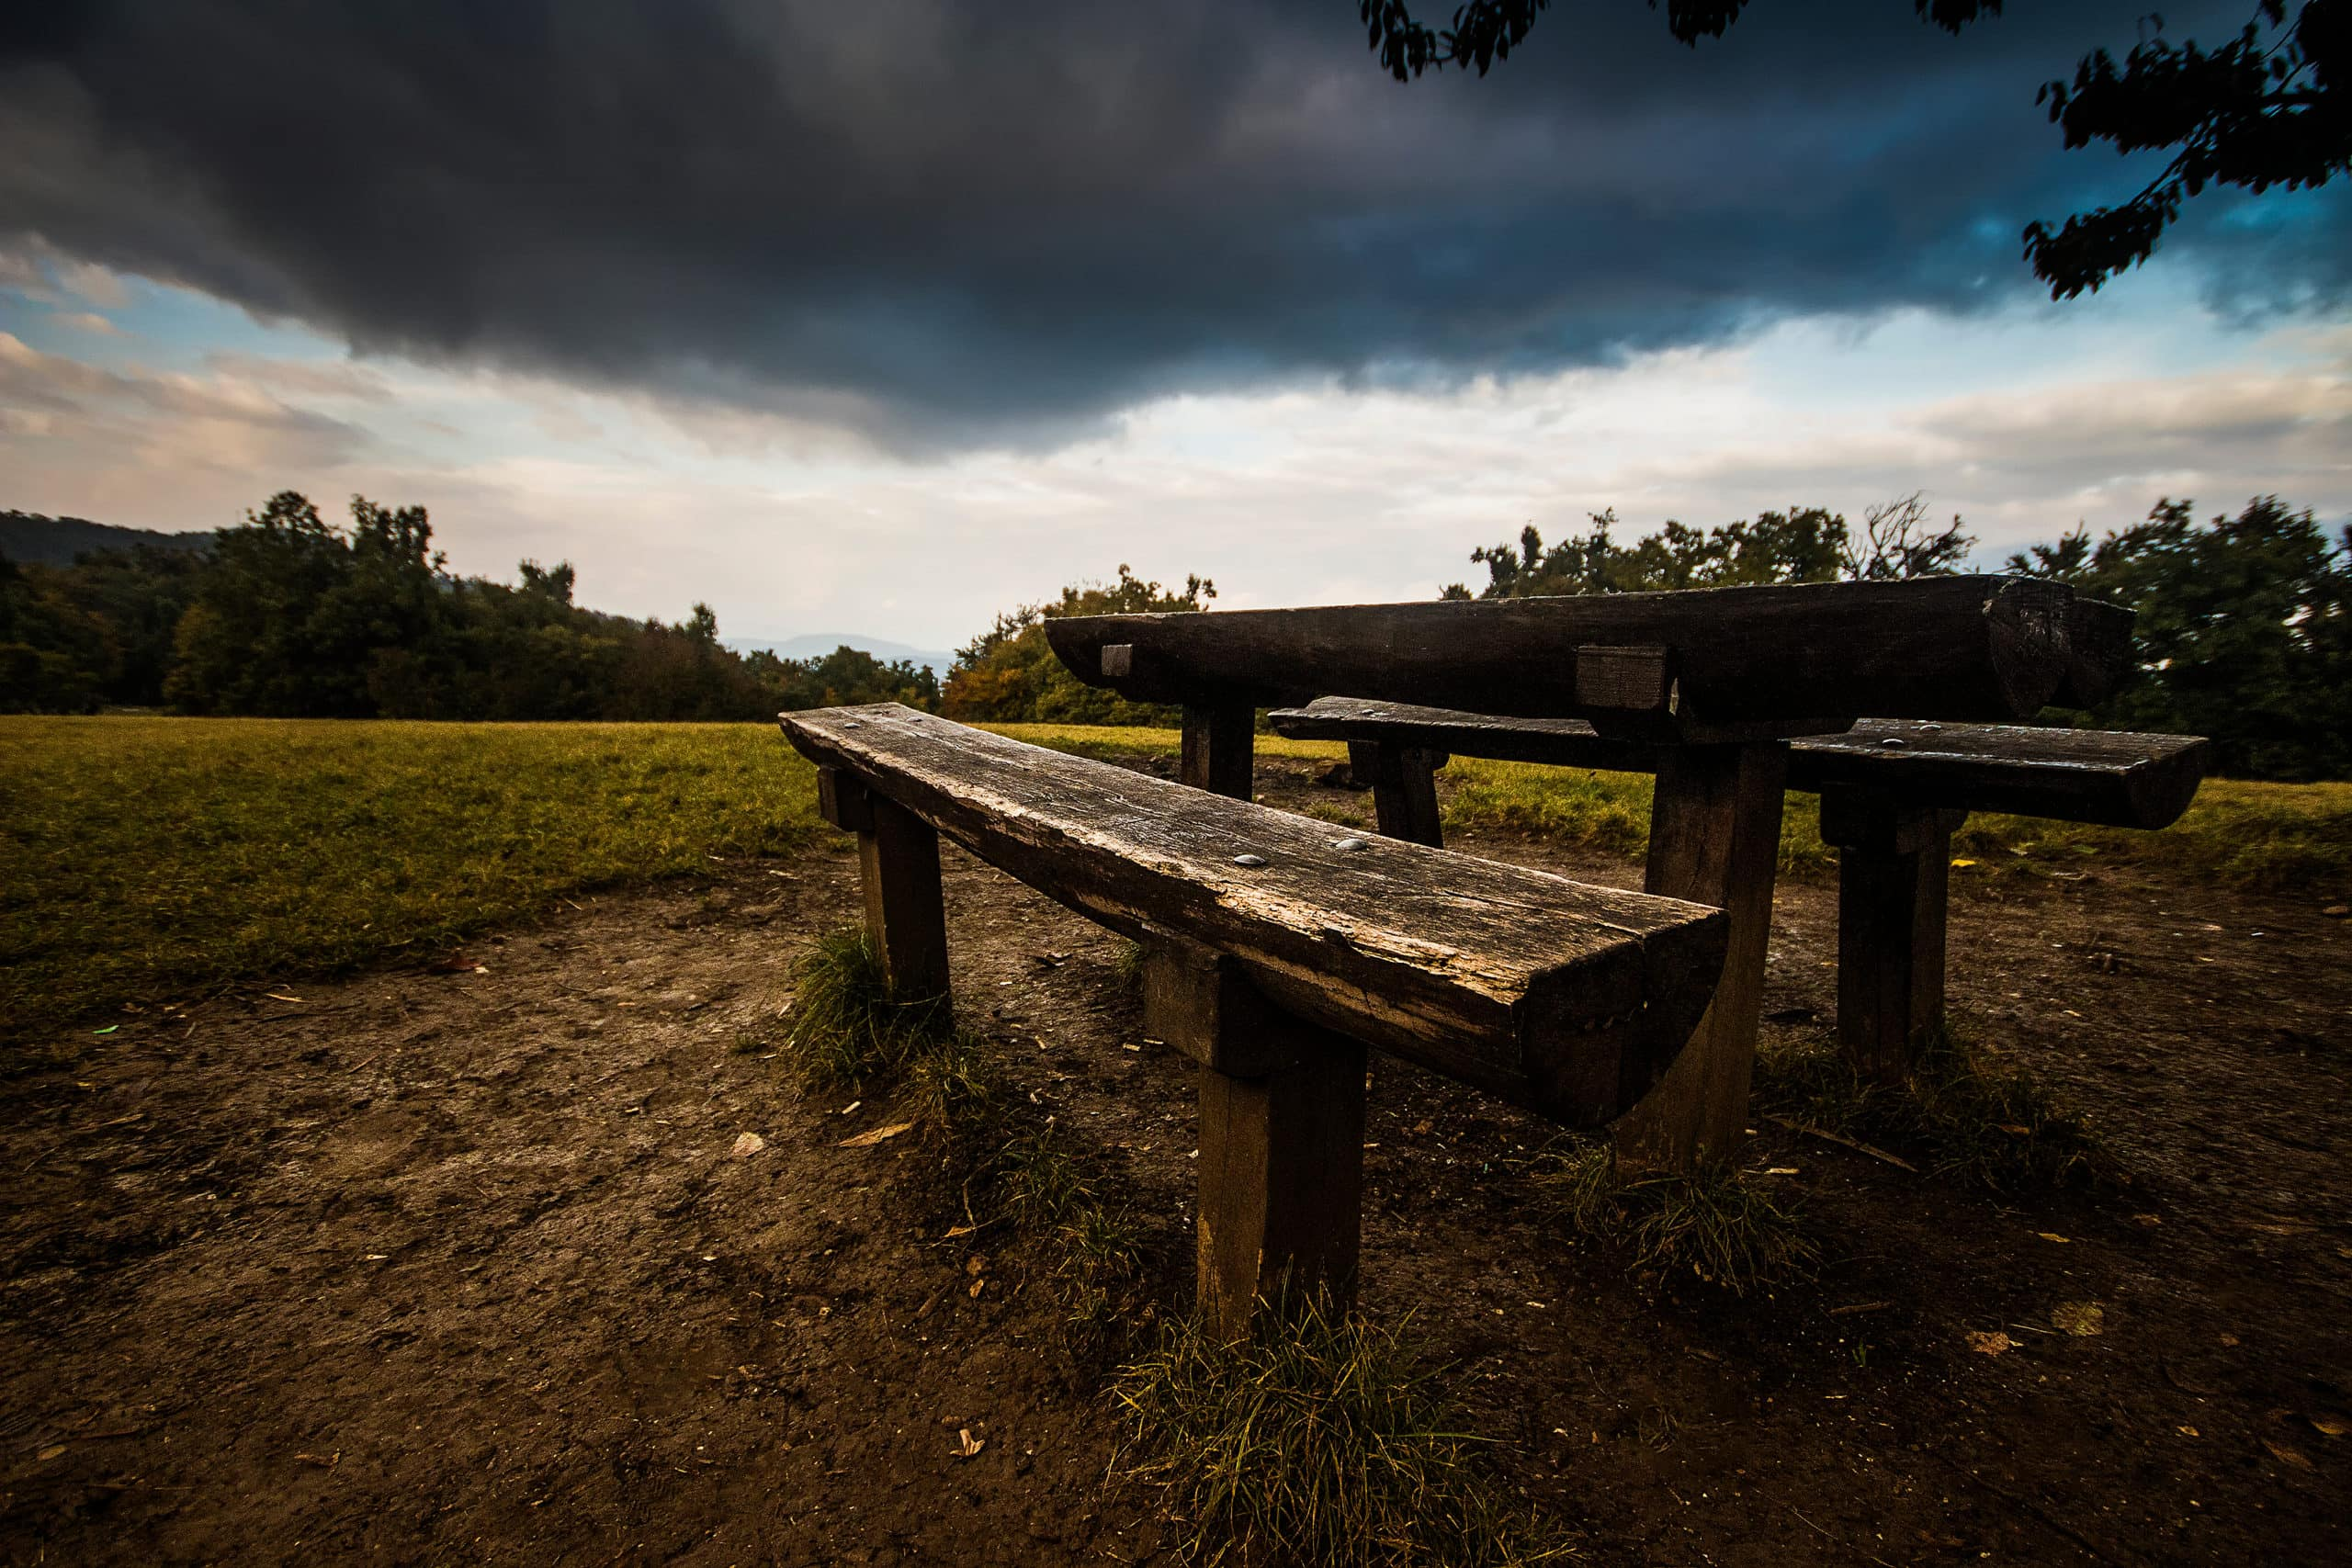 Rustic picnic table with meadow in background.